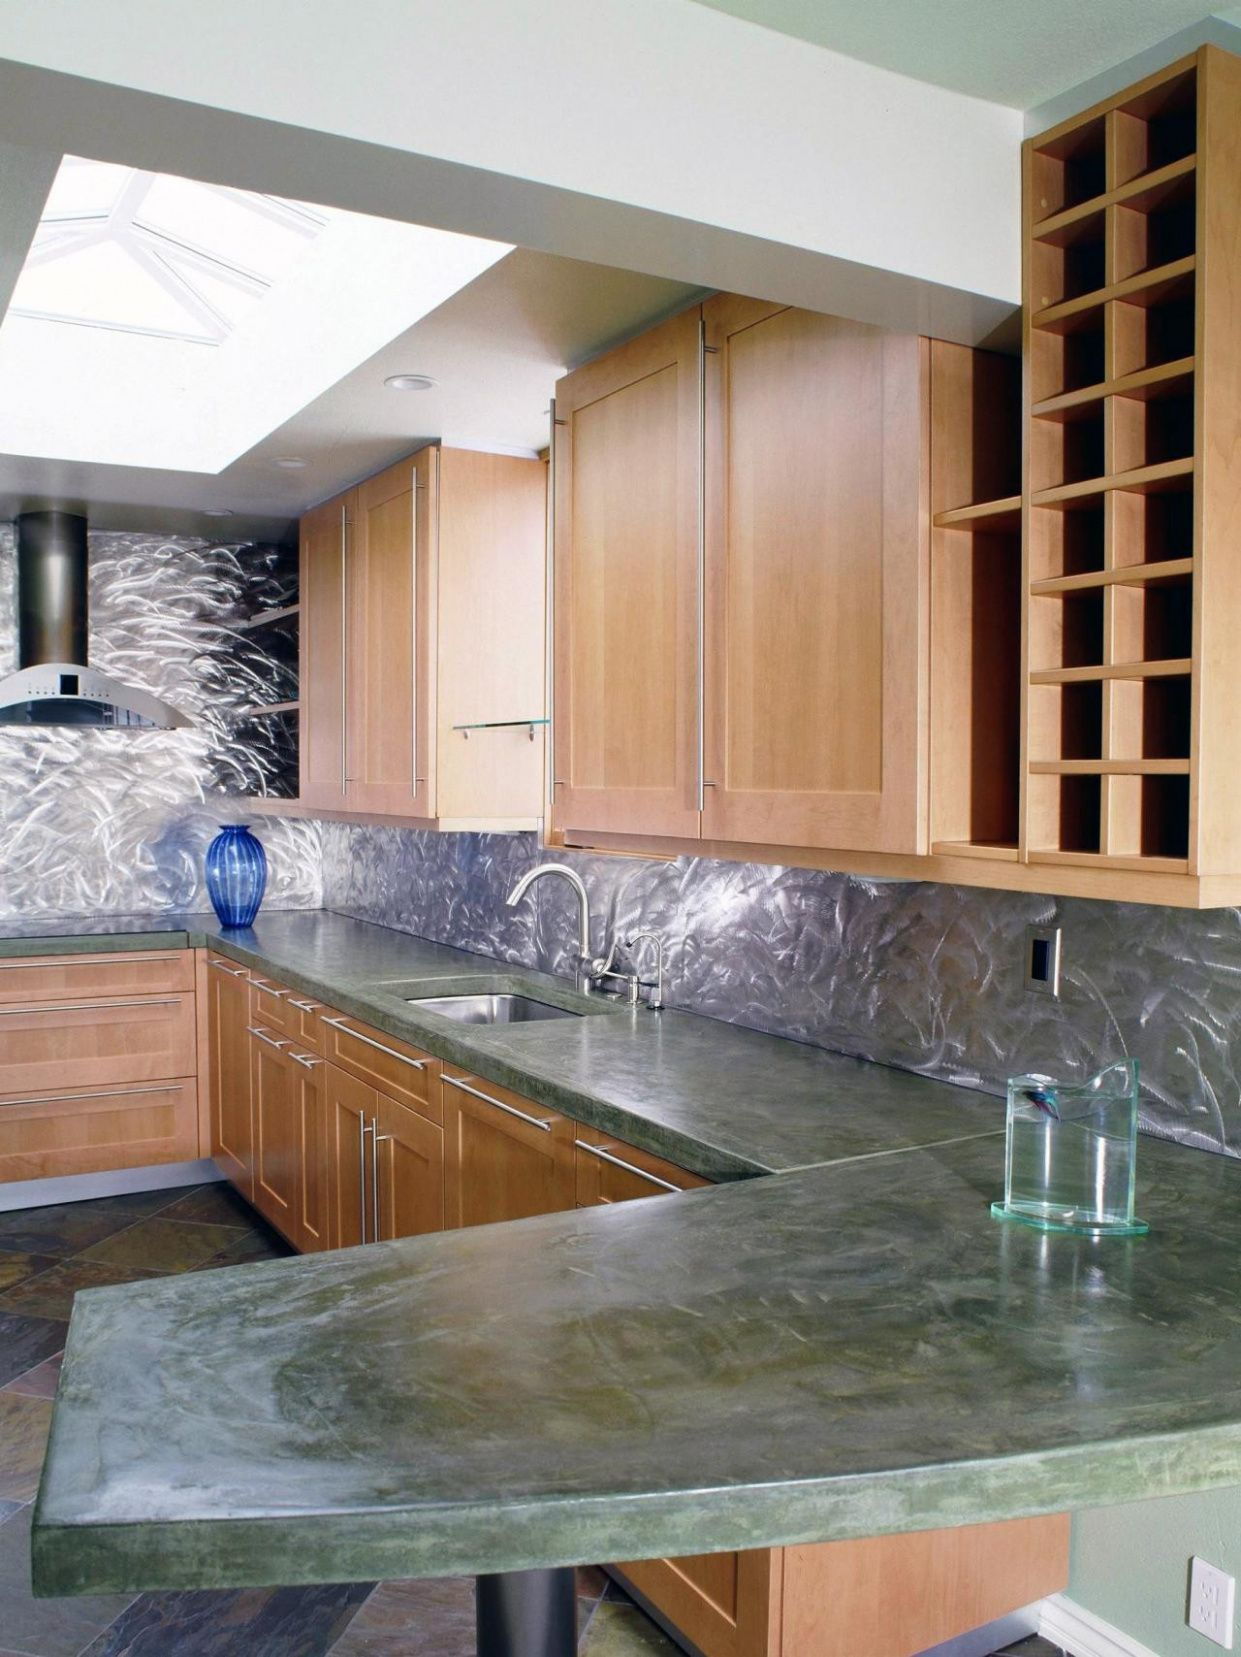 70 Standard Granite Countertop Thickness Kitchen Floor Vinyl Ideas Check More At Http